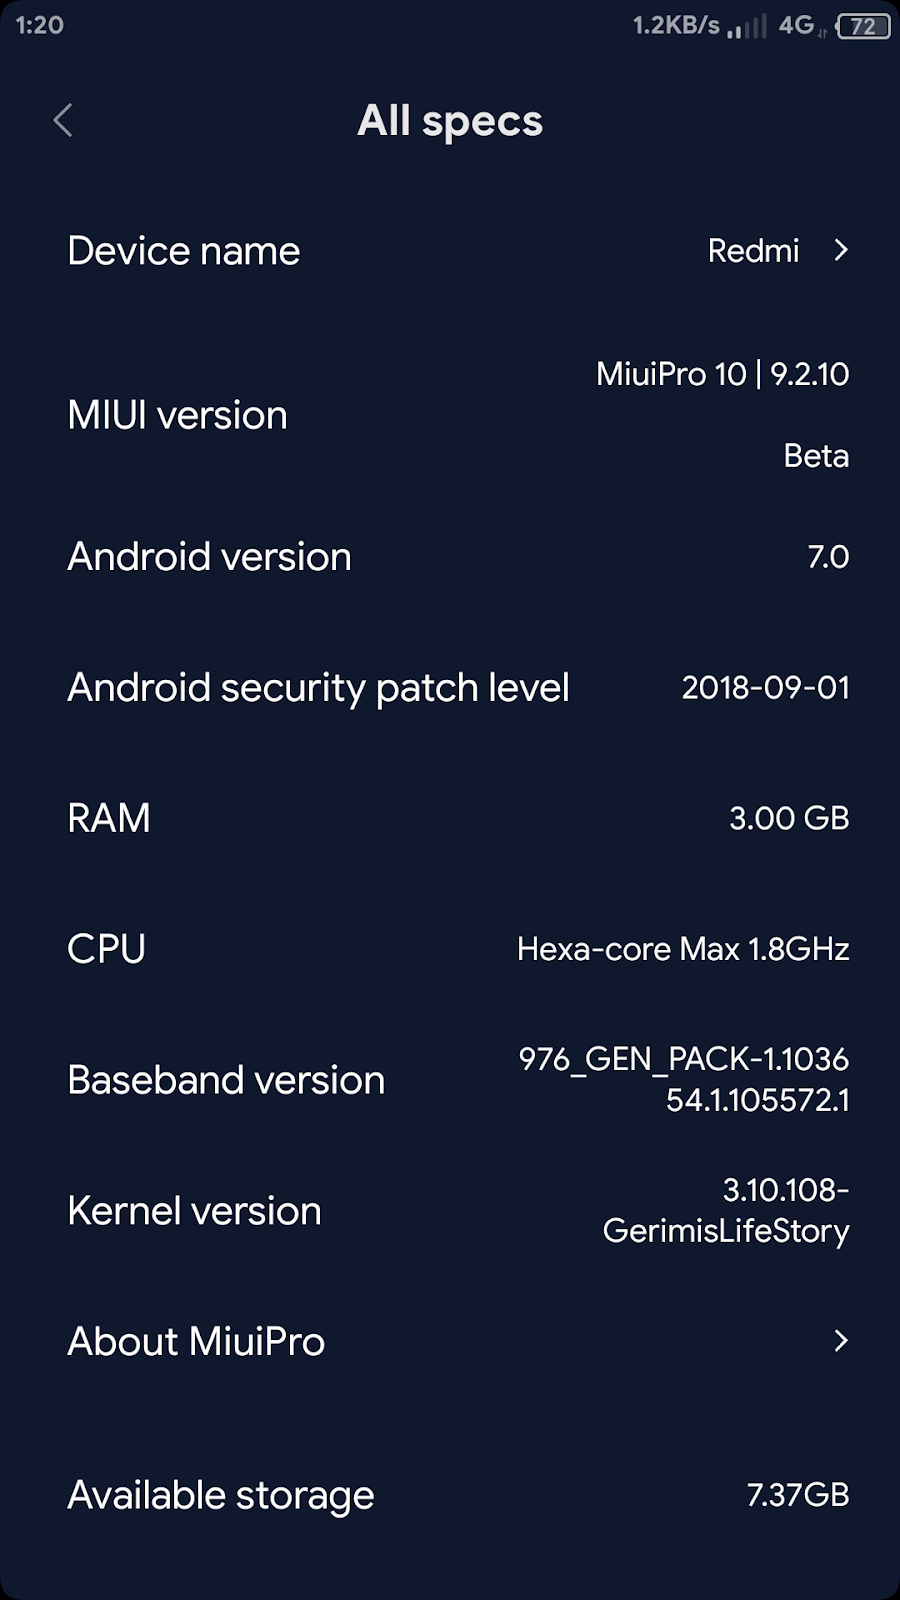 Gerimis's Life Story: Collection of kernel miui Nougat for kenzo